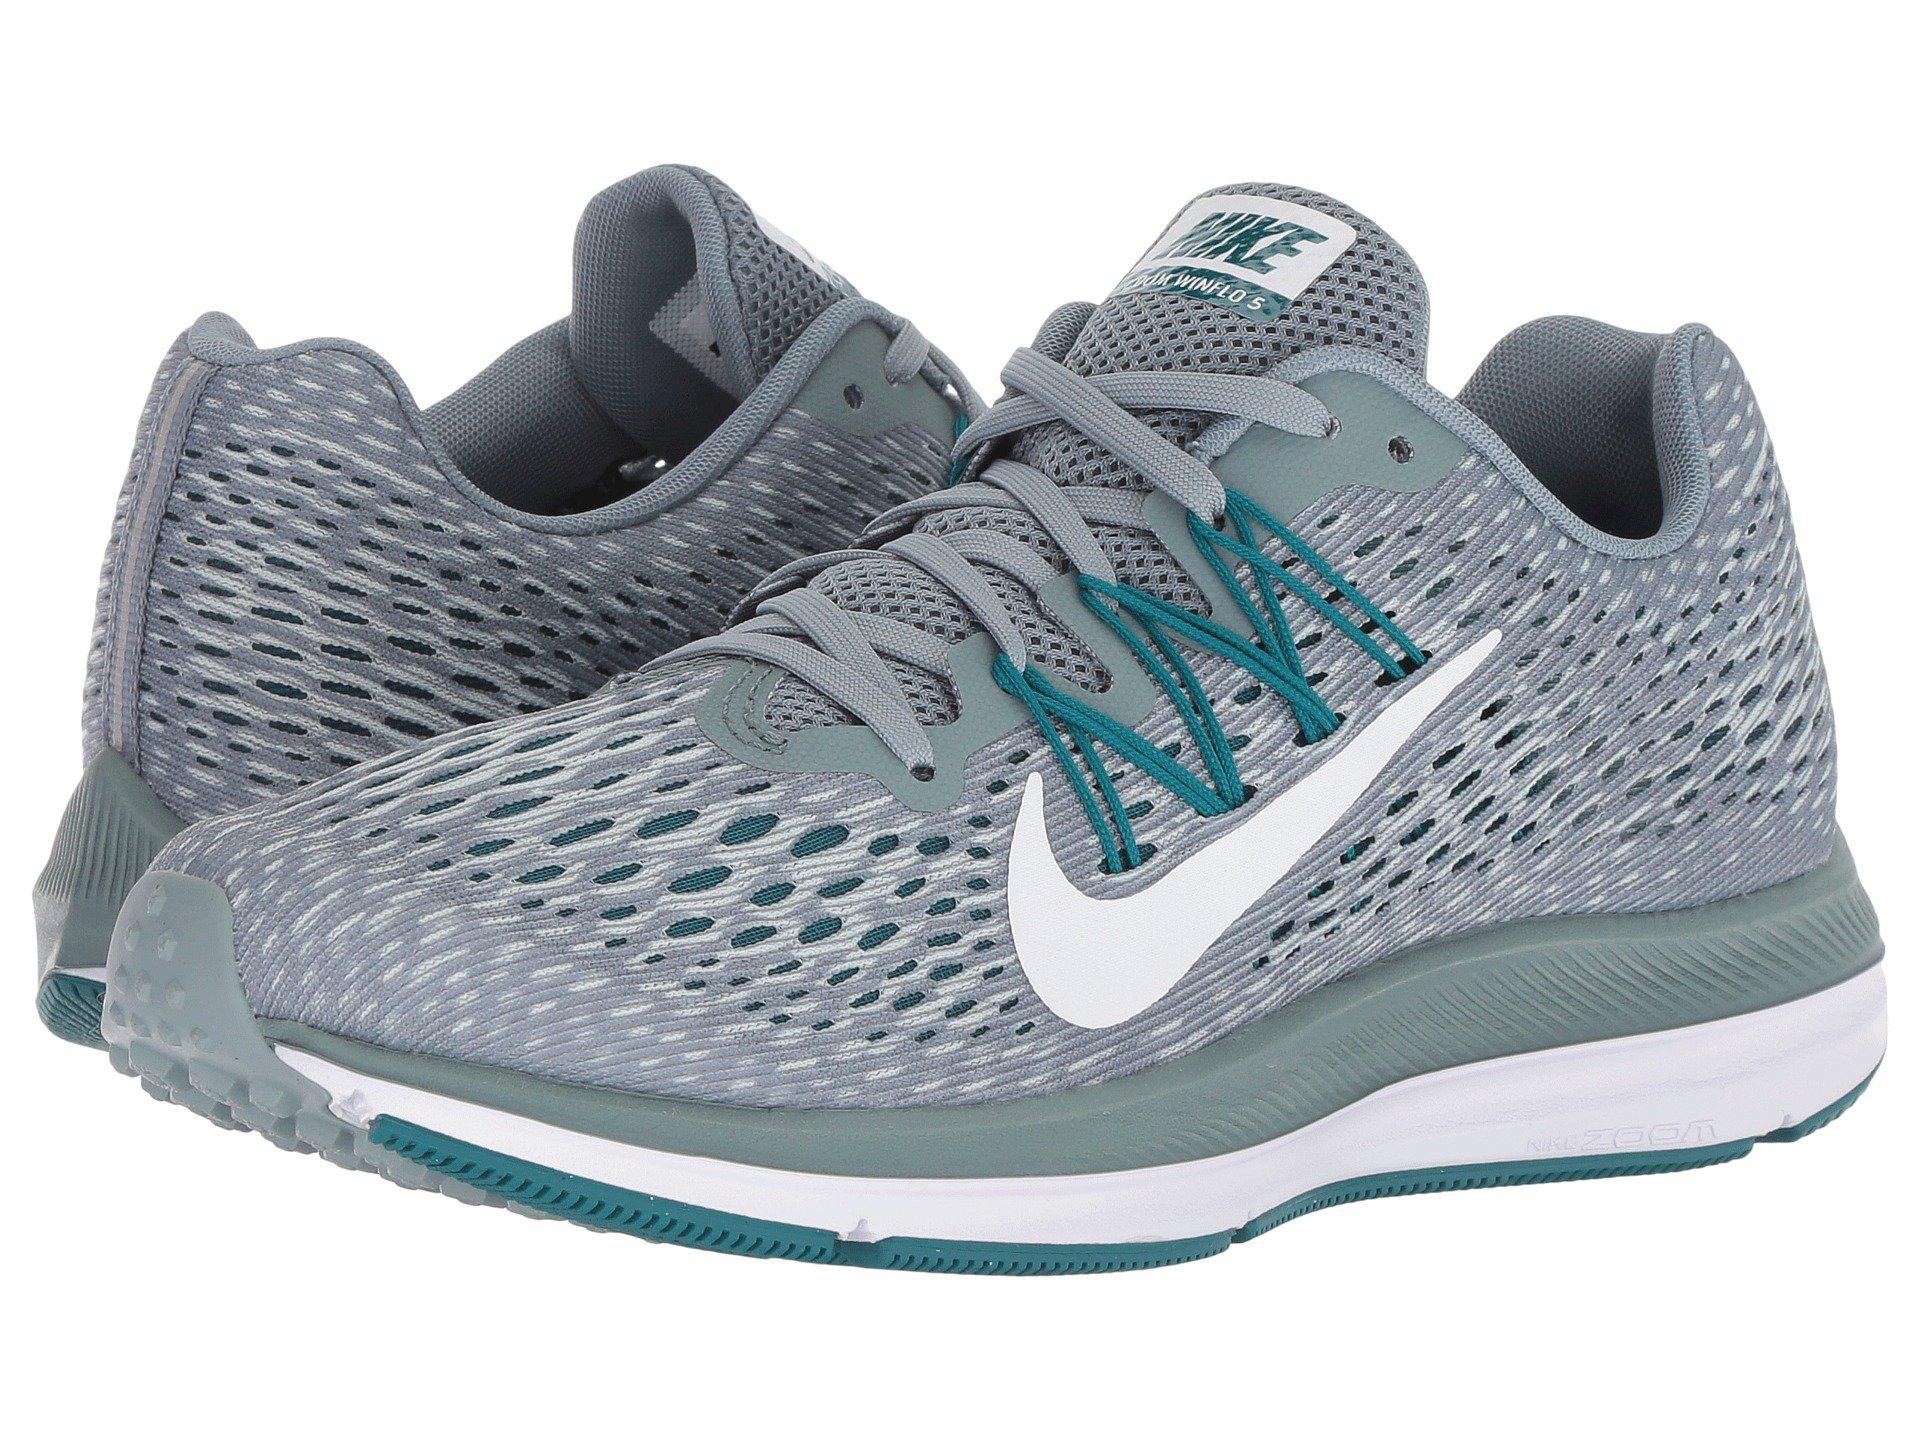 8d6c1de46f38 Lyst - Nike Air Zoom Winflo 5 (aviator Grey white geode Teal ...